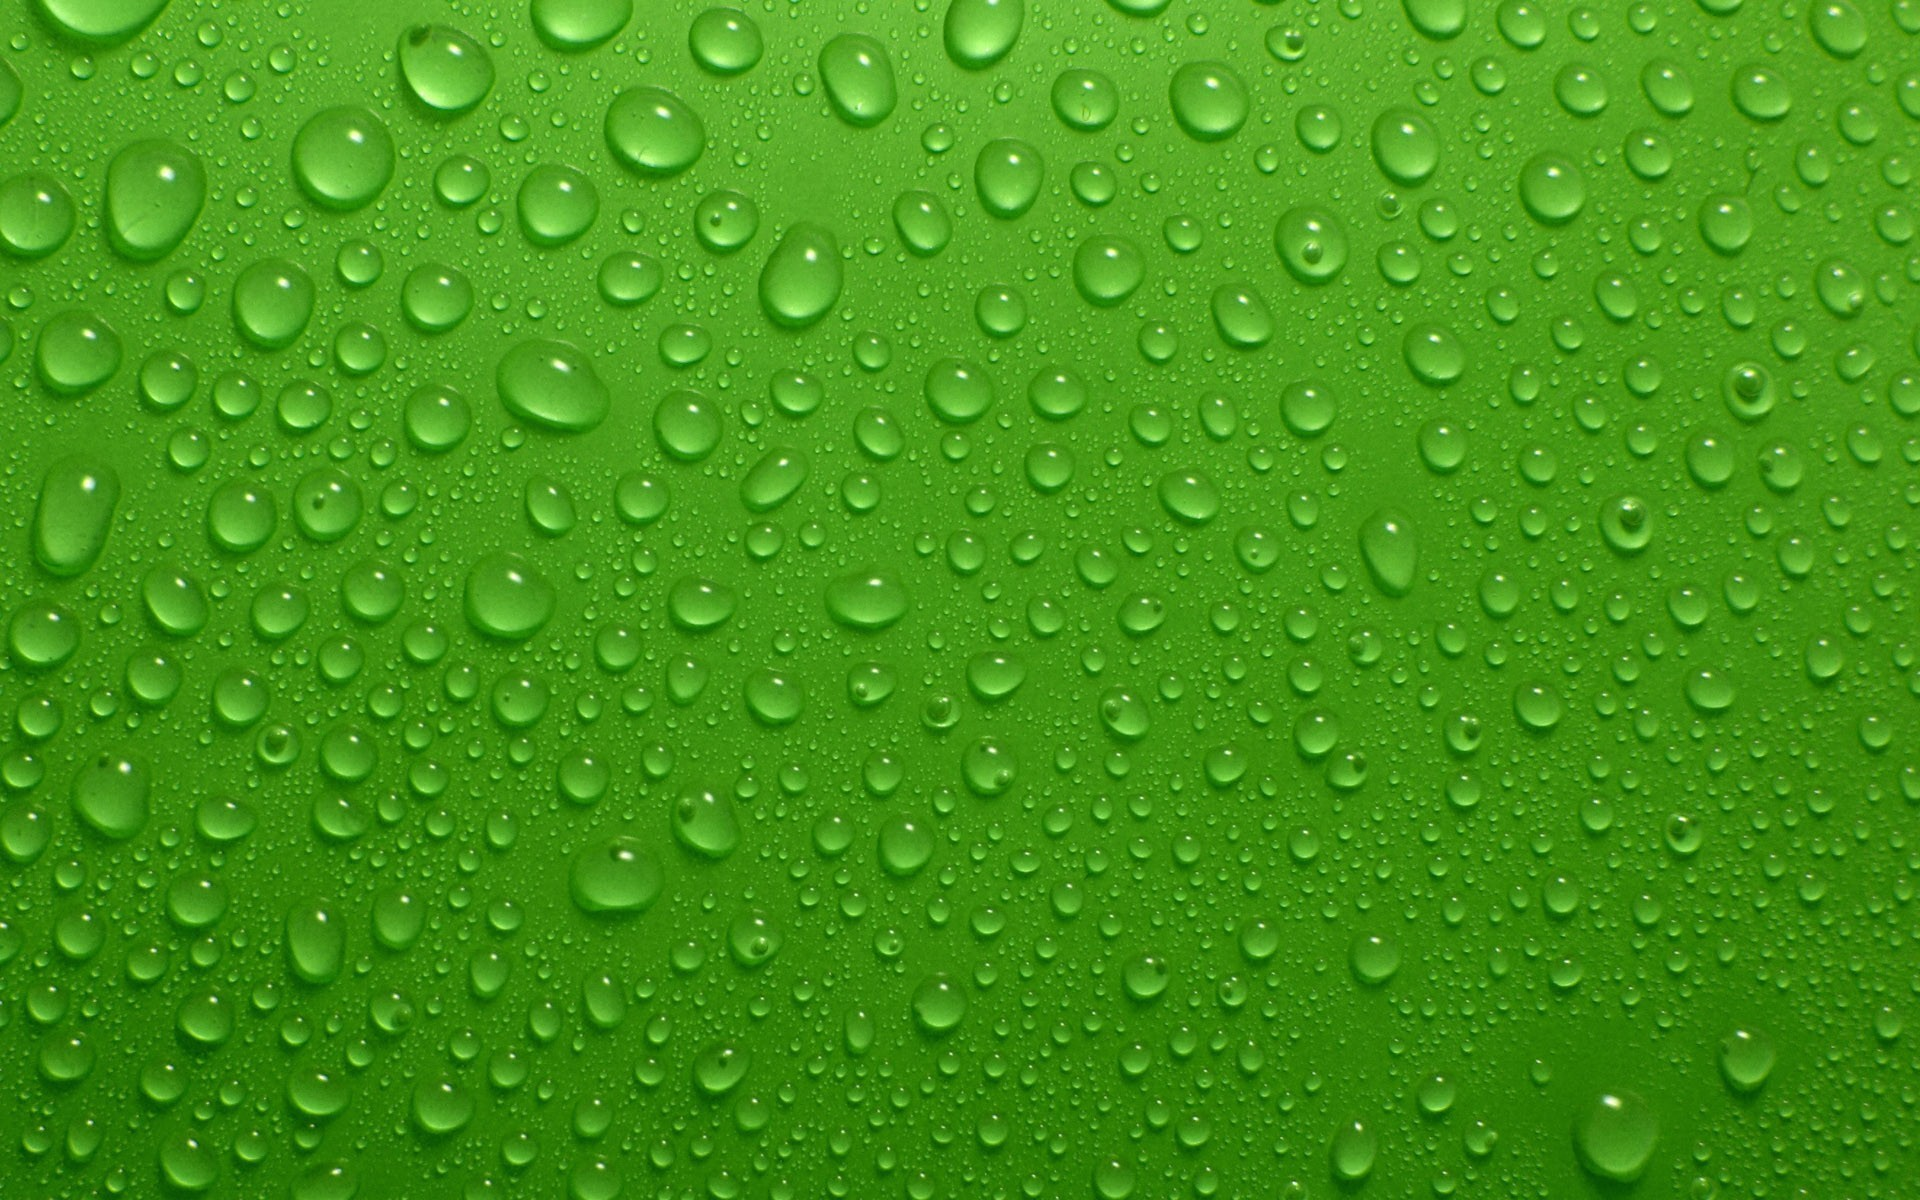 Green Bubbles wallpaper x